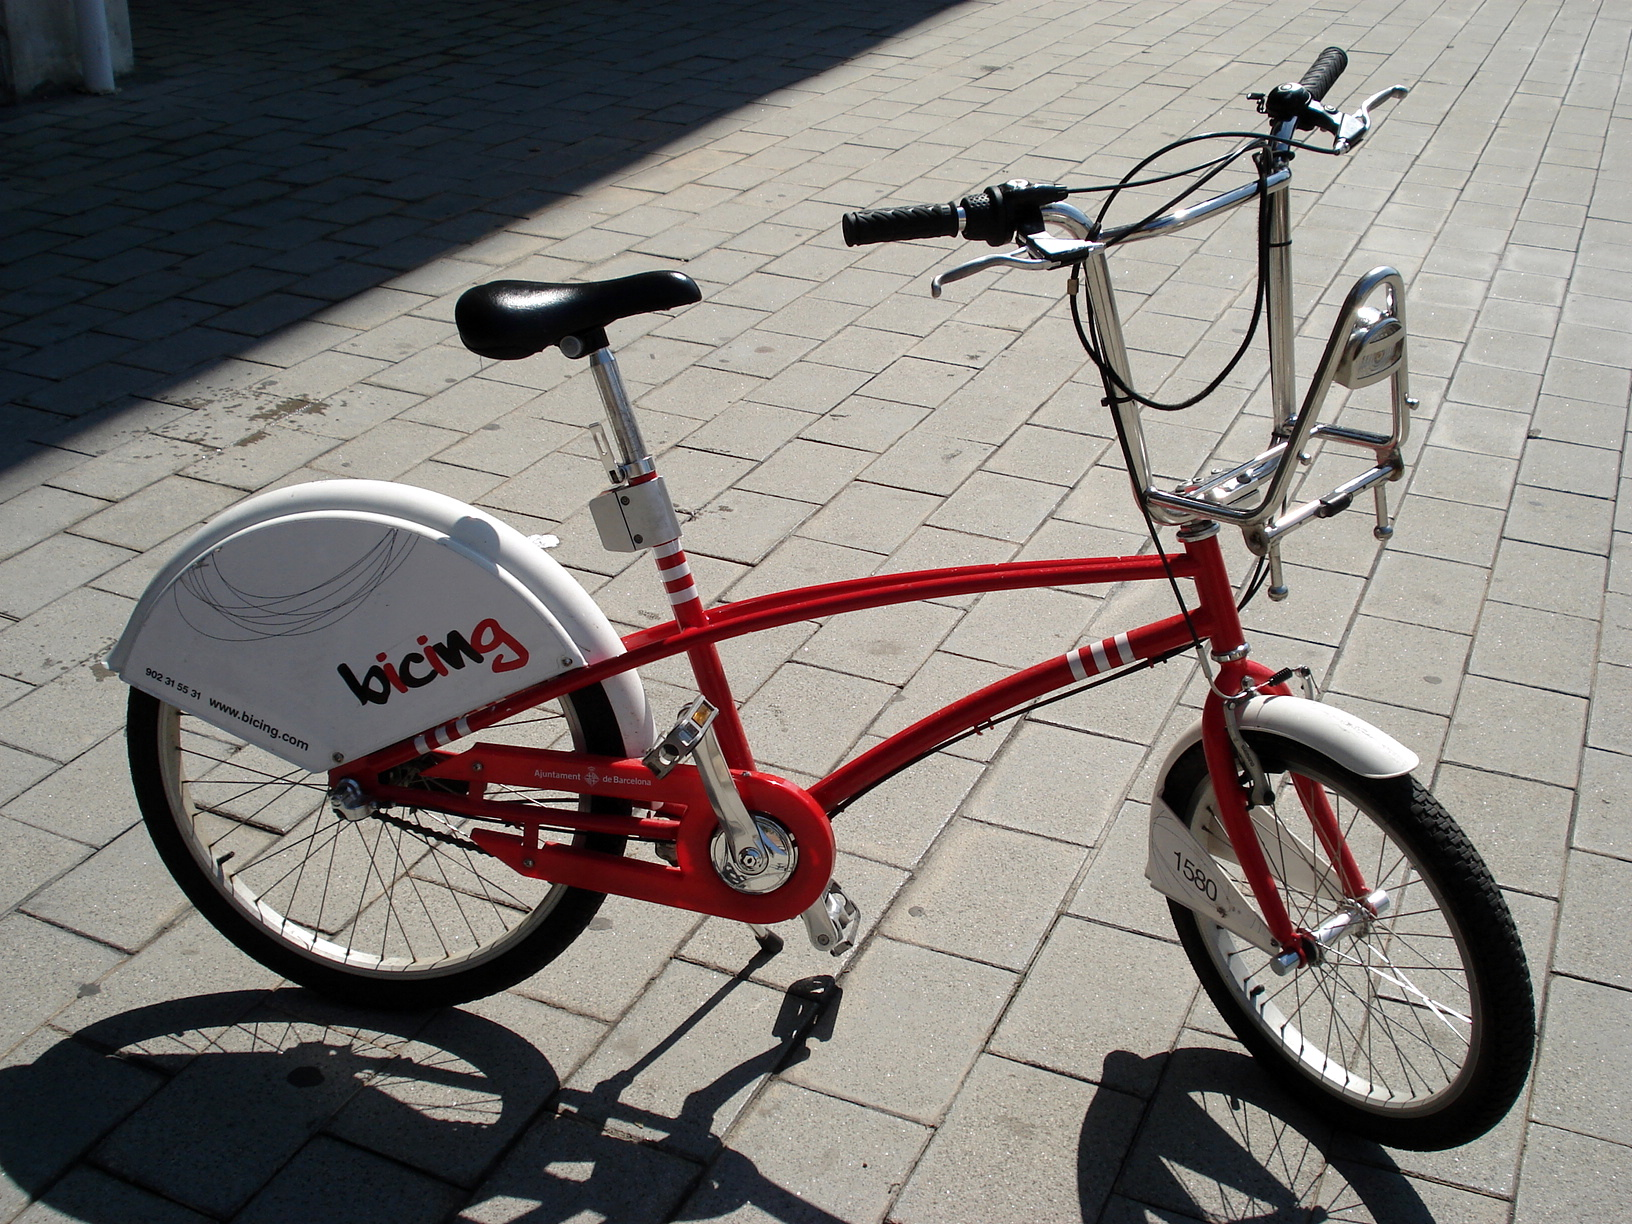 Red and white for Bicing in Barcelona